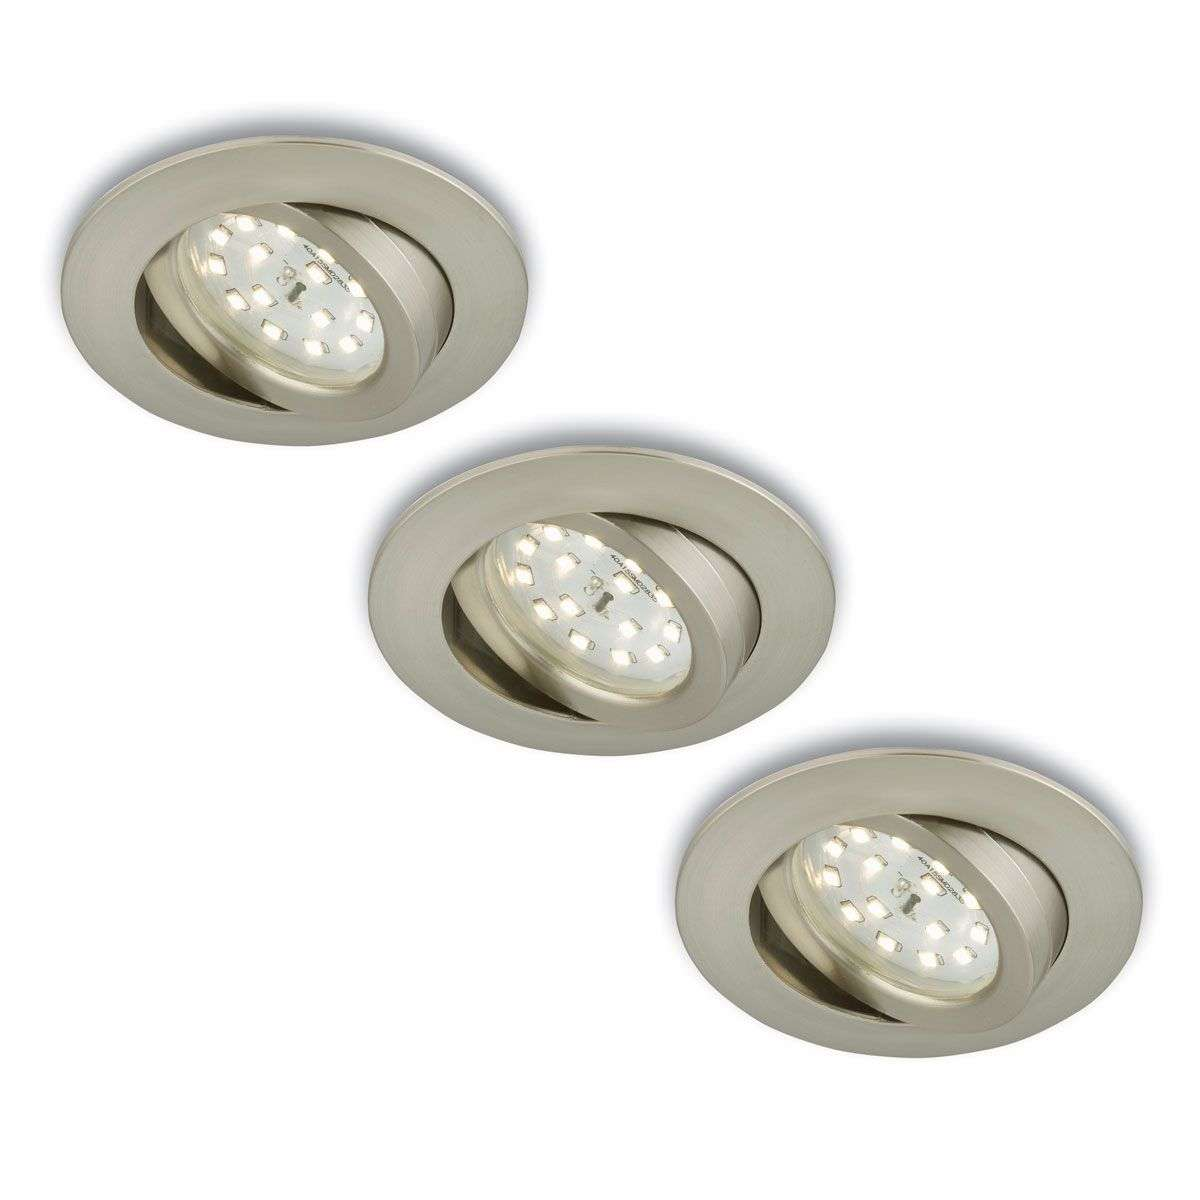 Foco LED empotrable girat., 3 unid., mate-níquel-1510288-31